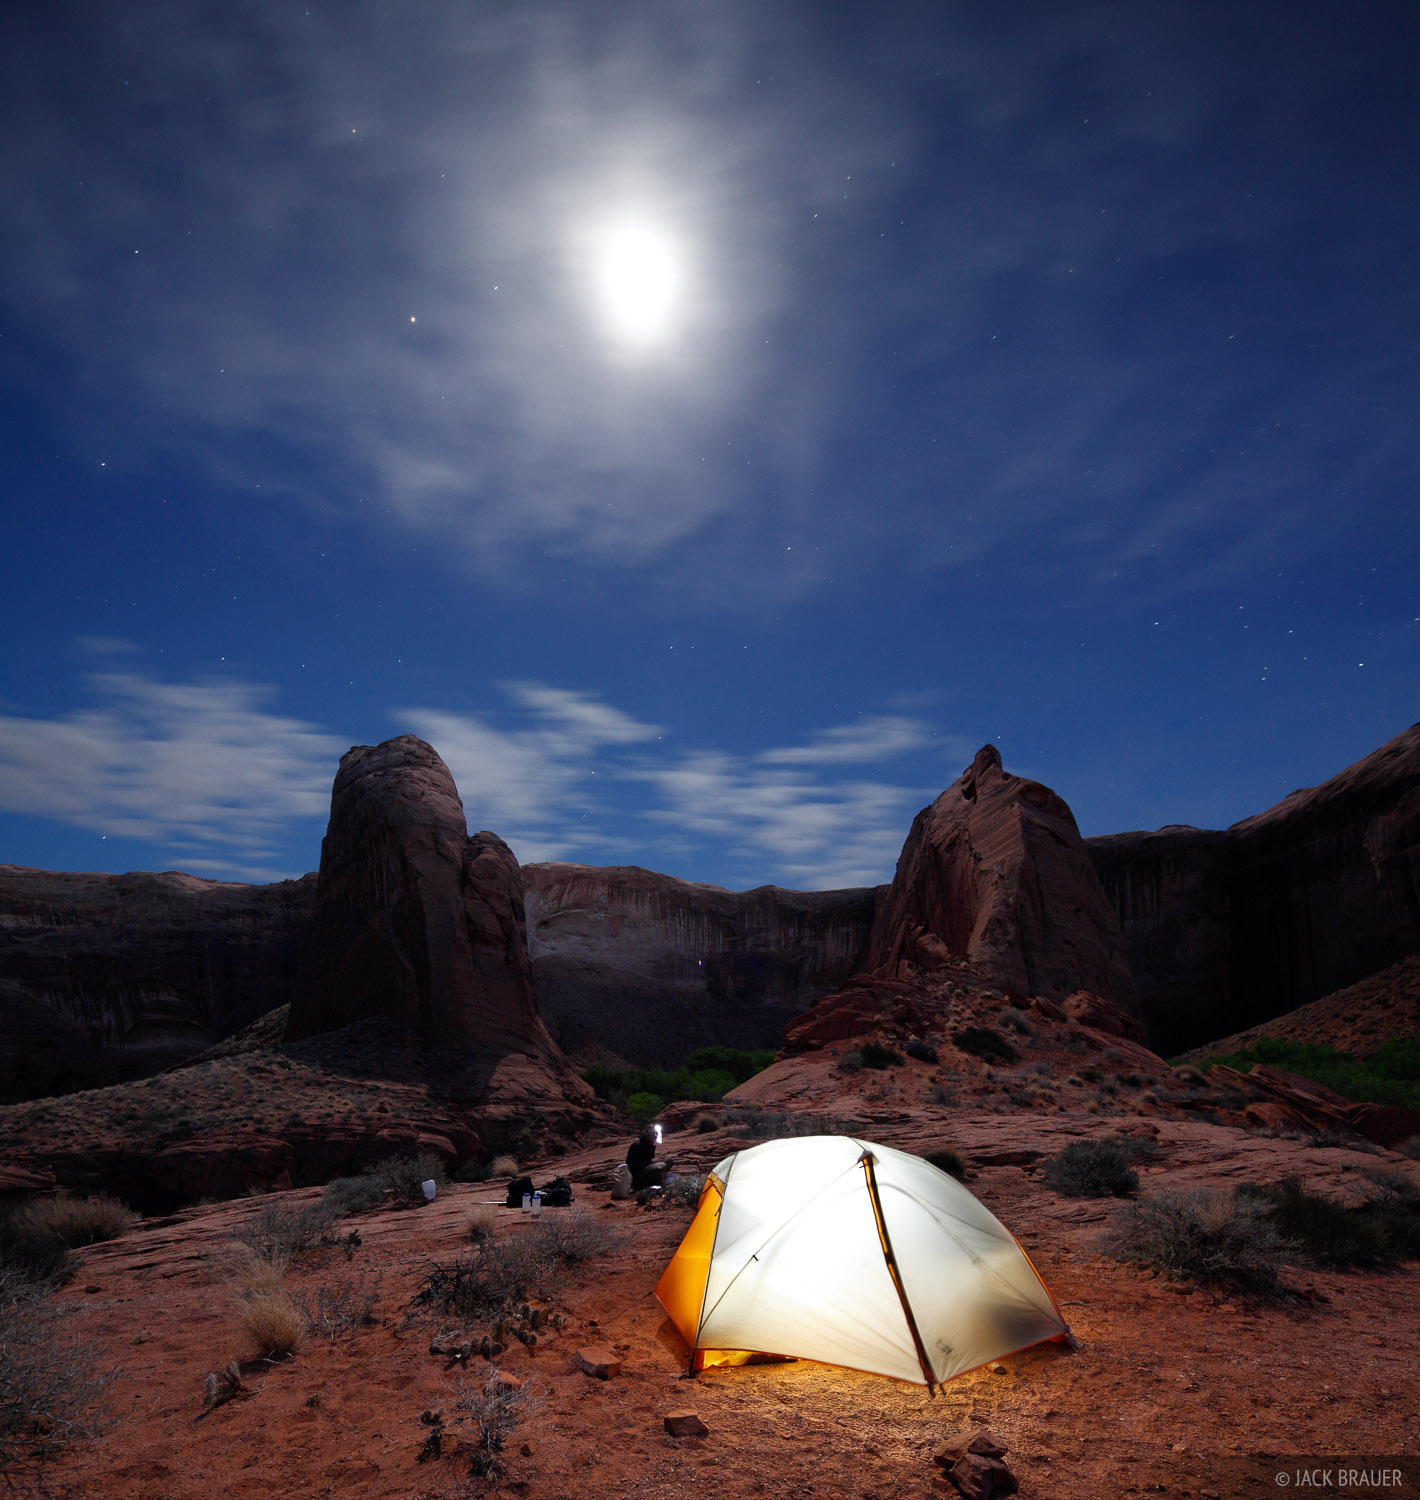 Coyote Gulch, Escalante, Utah, moonlight, camping, tent, Grand Staircase-Escalante National Monument, photo